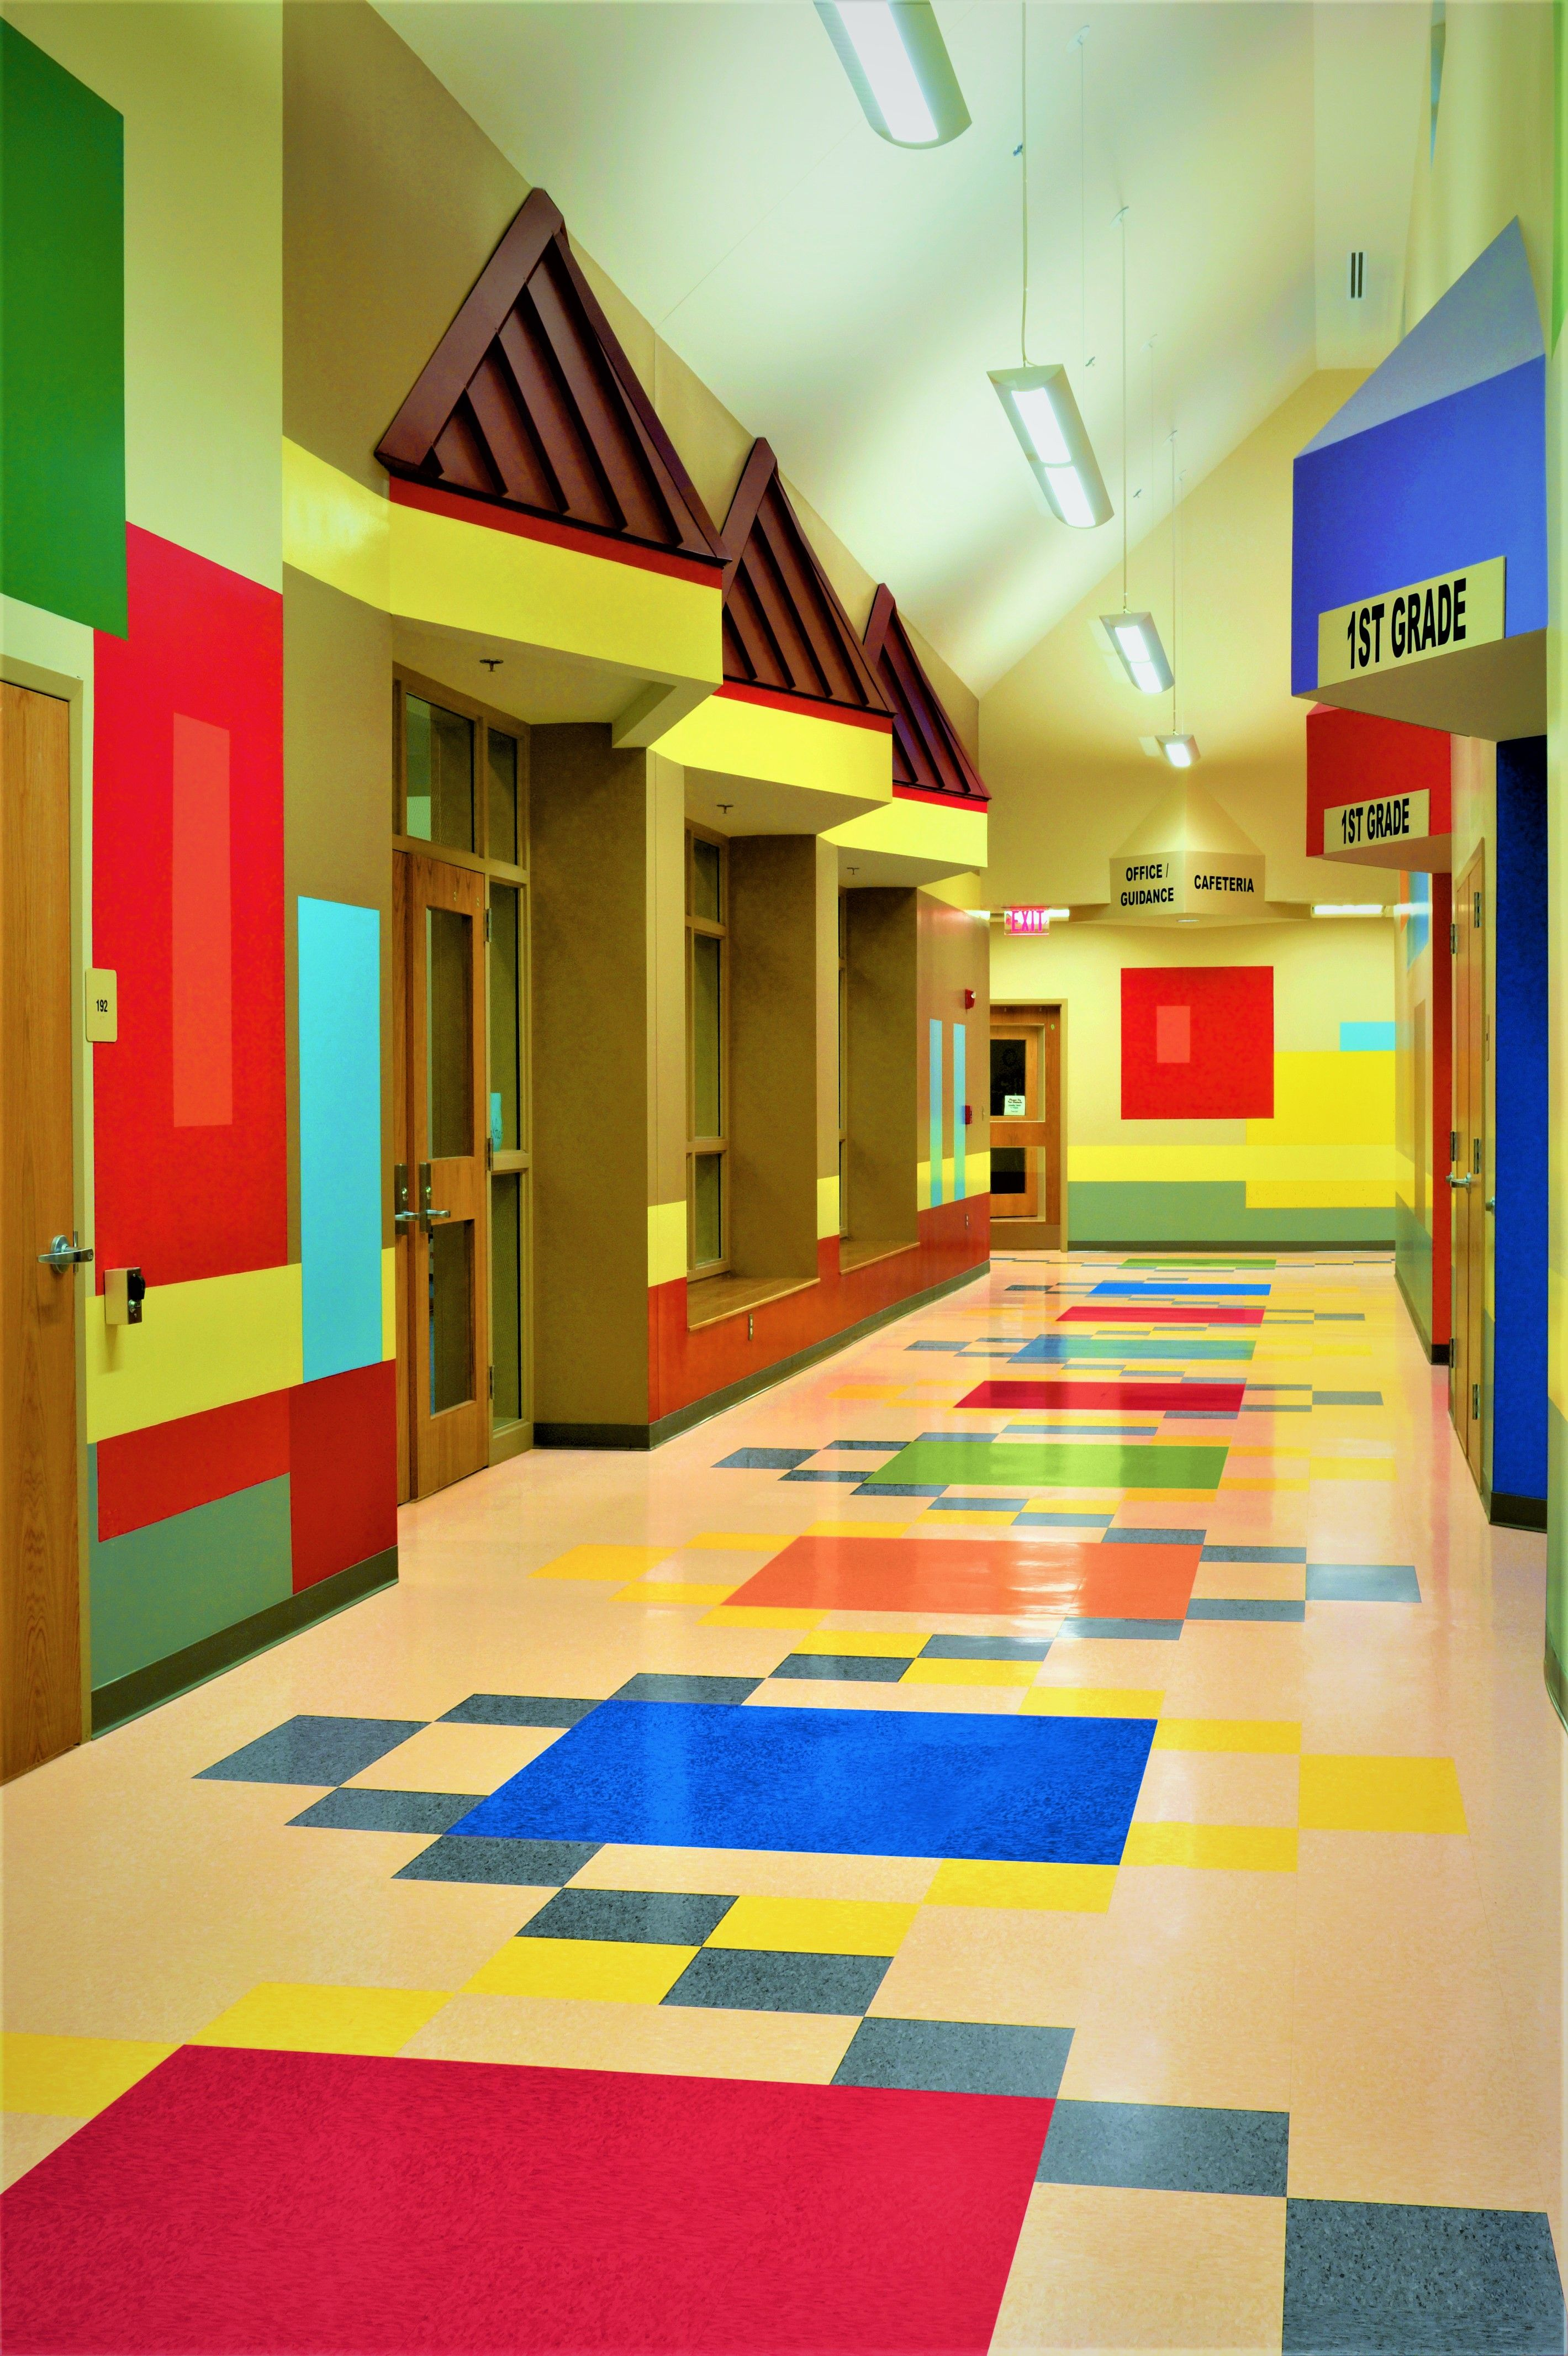 Elementary School In Us Making The Flooring Fun For The